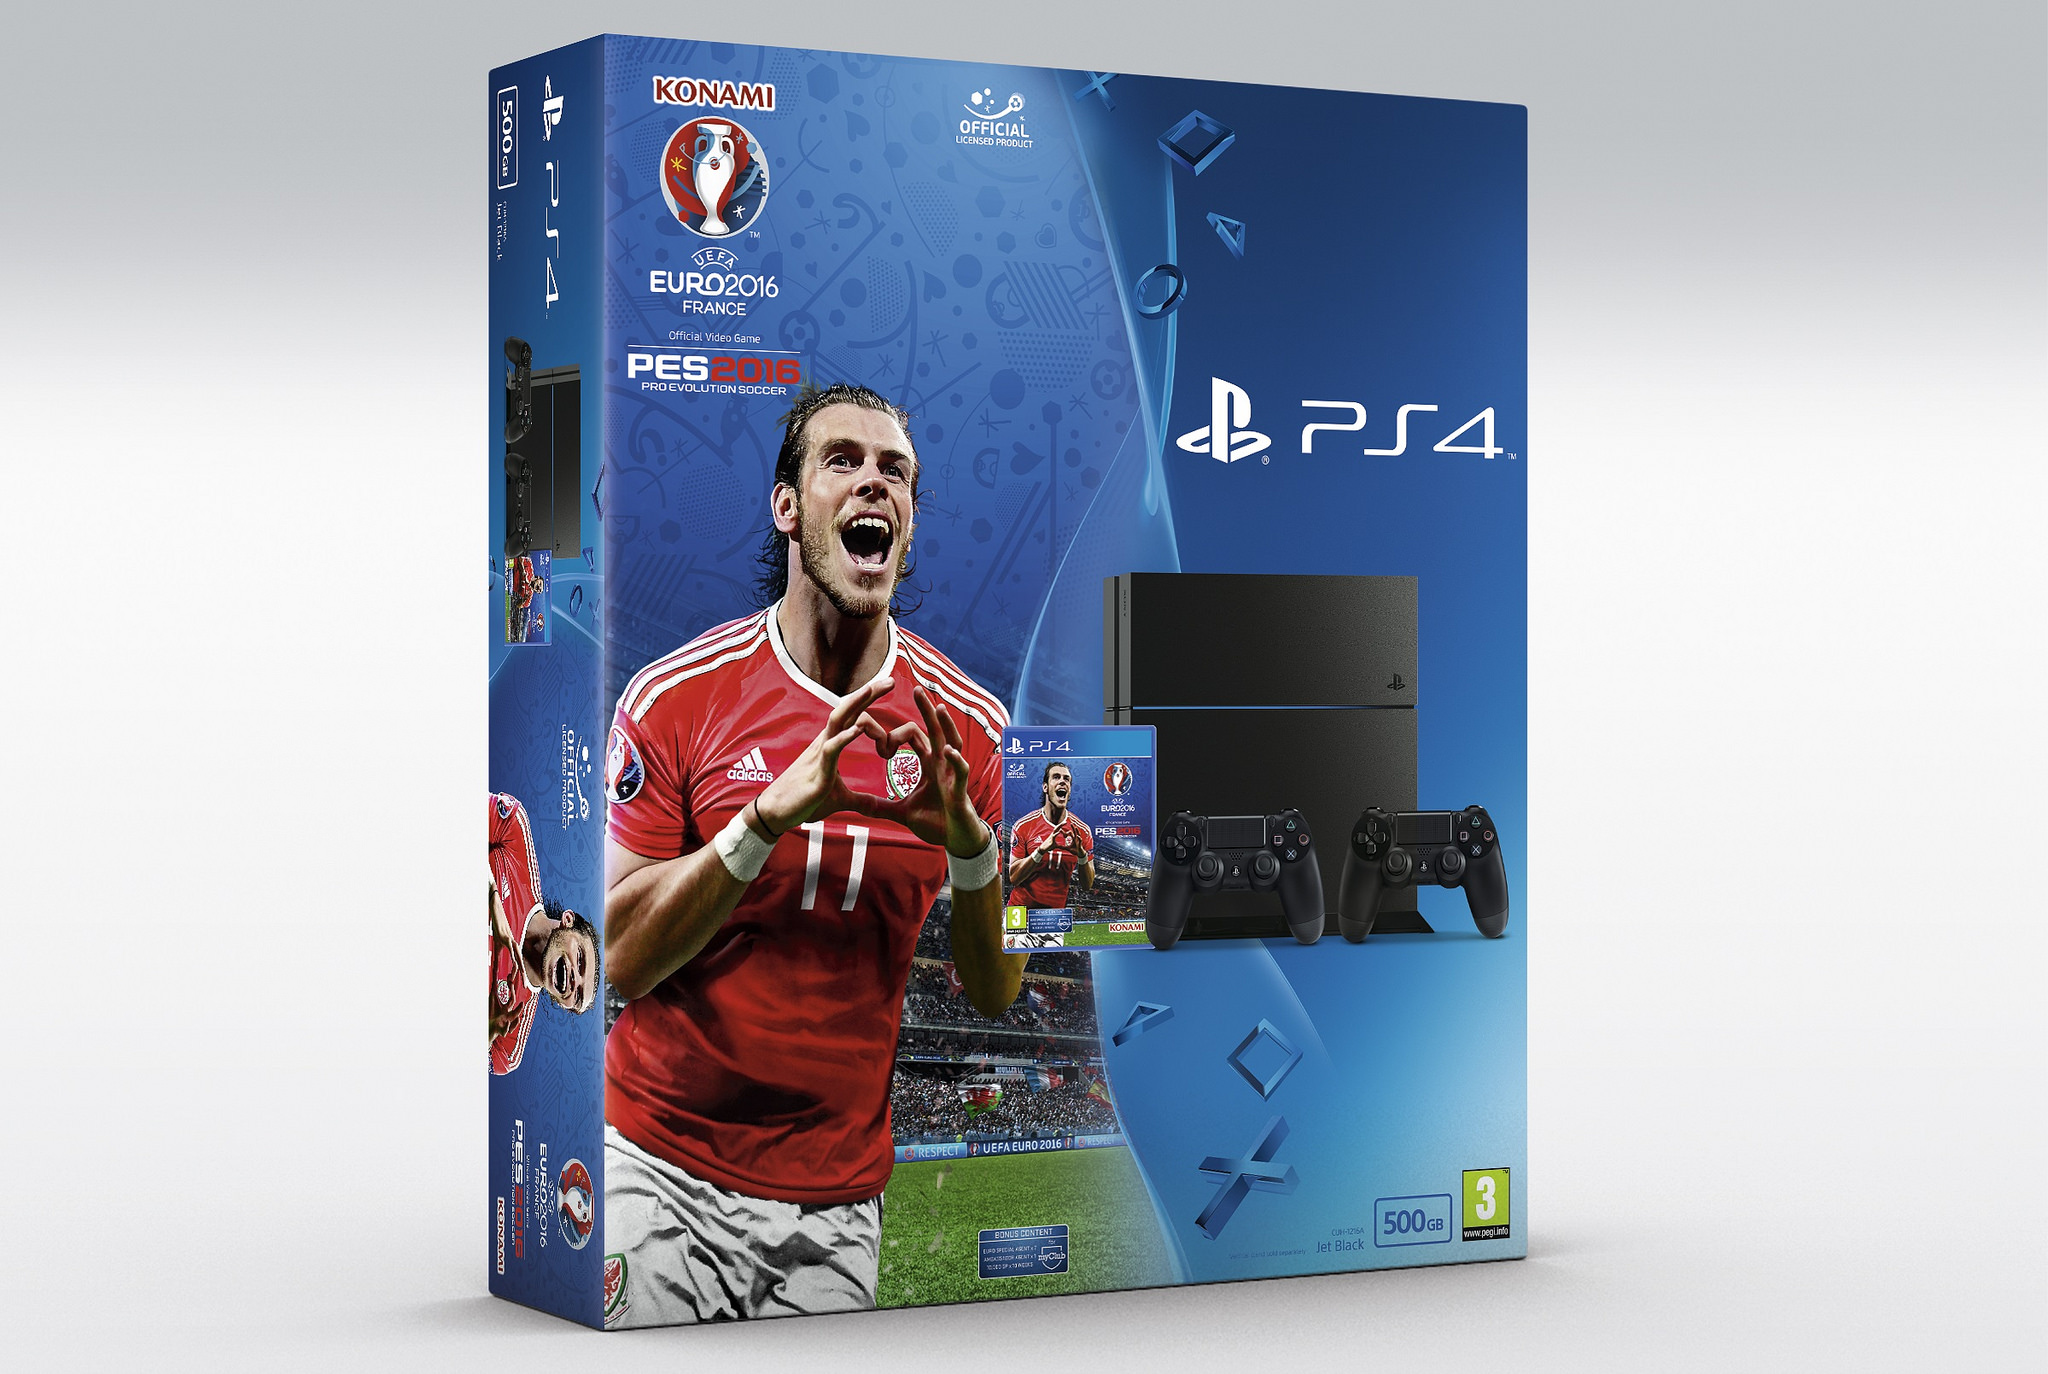 bundle PS4 PES Euro 2016